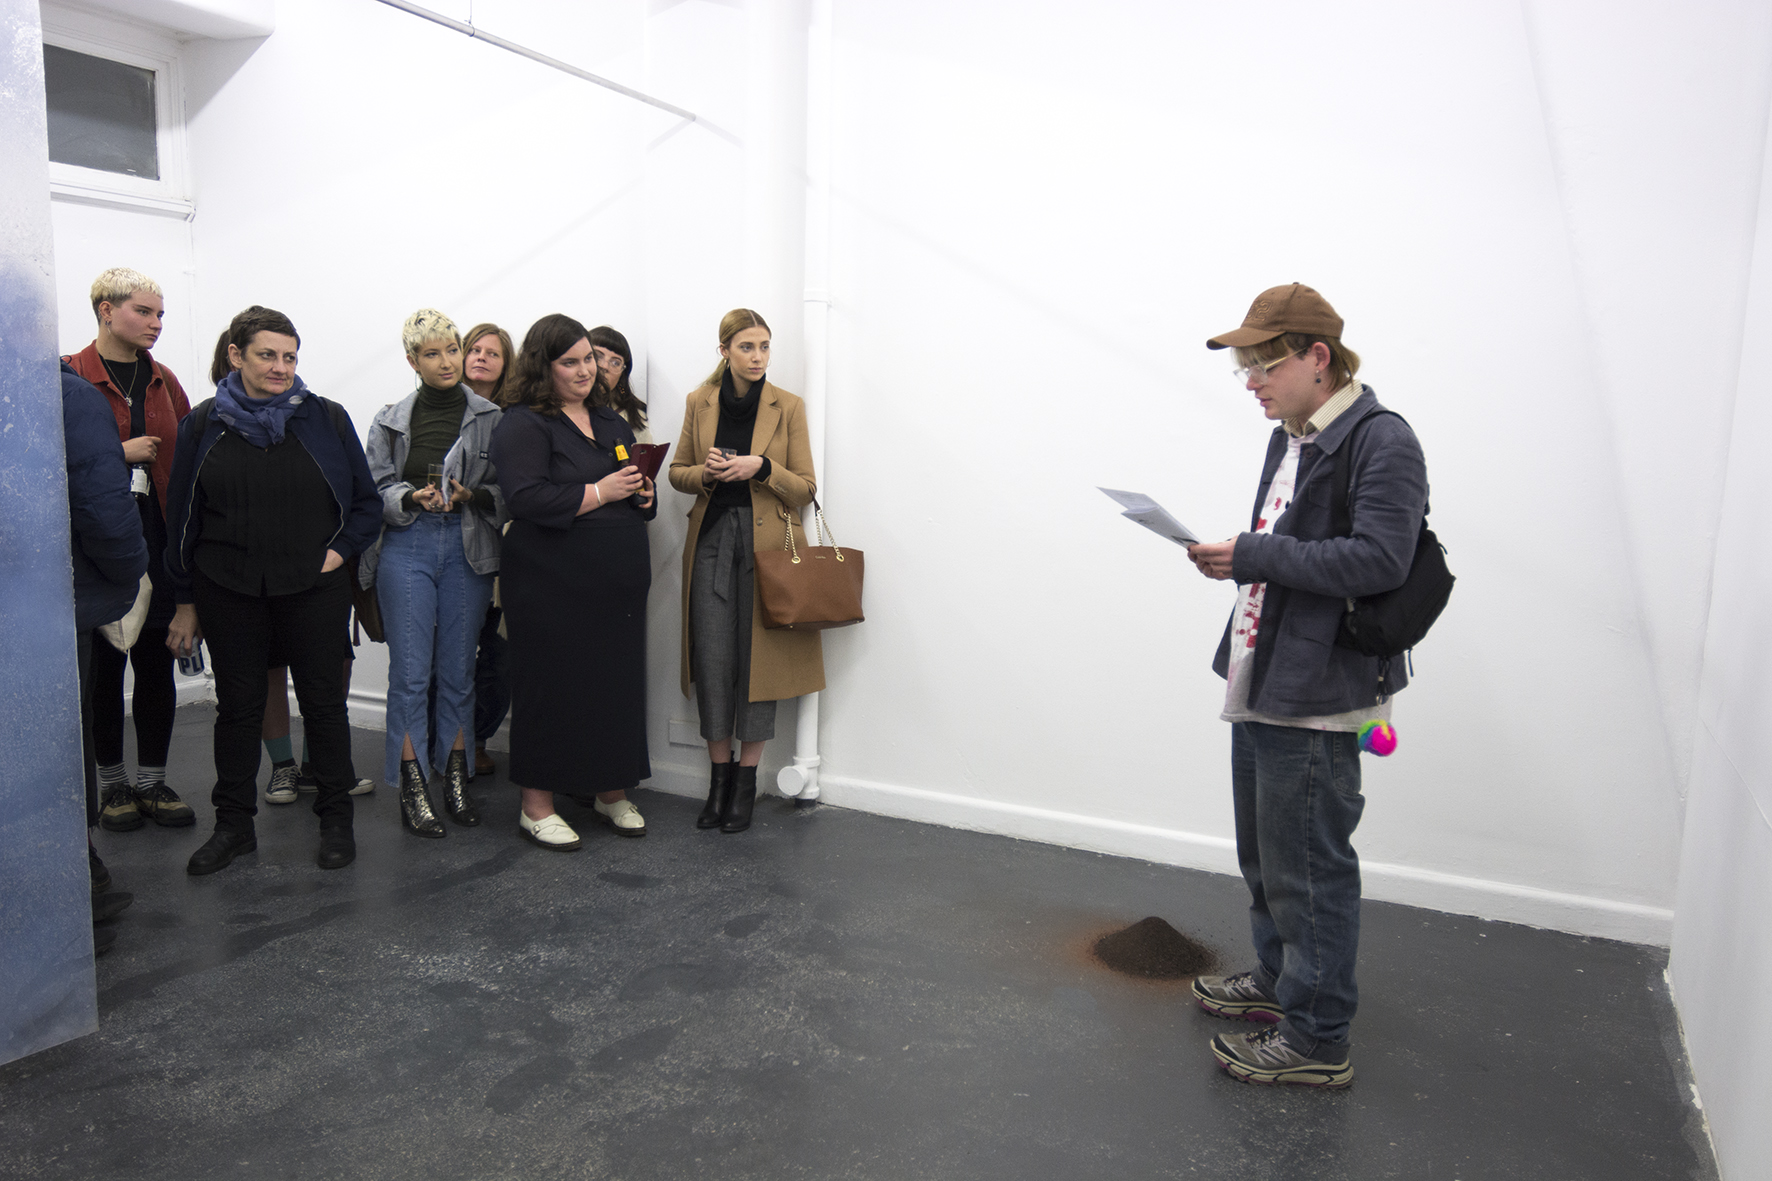 Daniel Ward, reading at opening of Erin Hallyburton + Stephanie Hosler,  There is a wall dissolving , BLINDSIDE 2019. Photo Talia Carroll | Courtesy the artists.